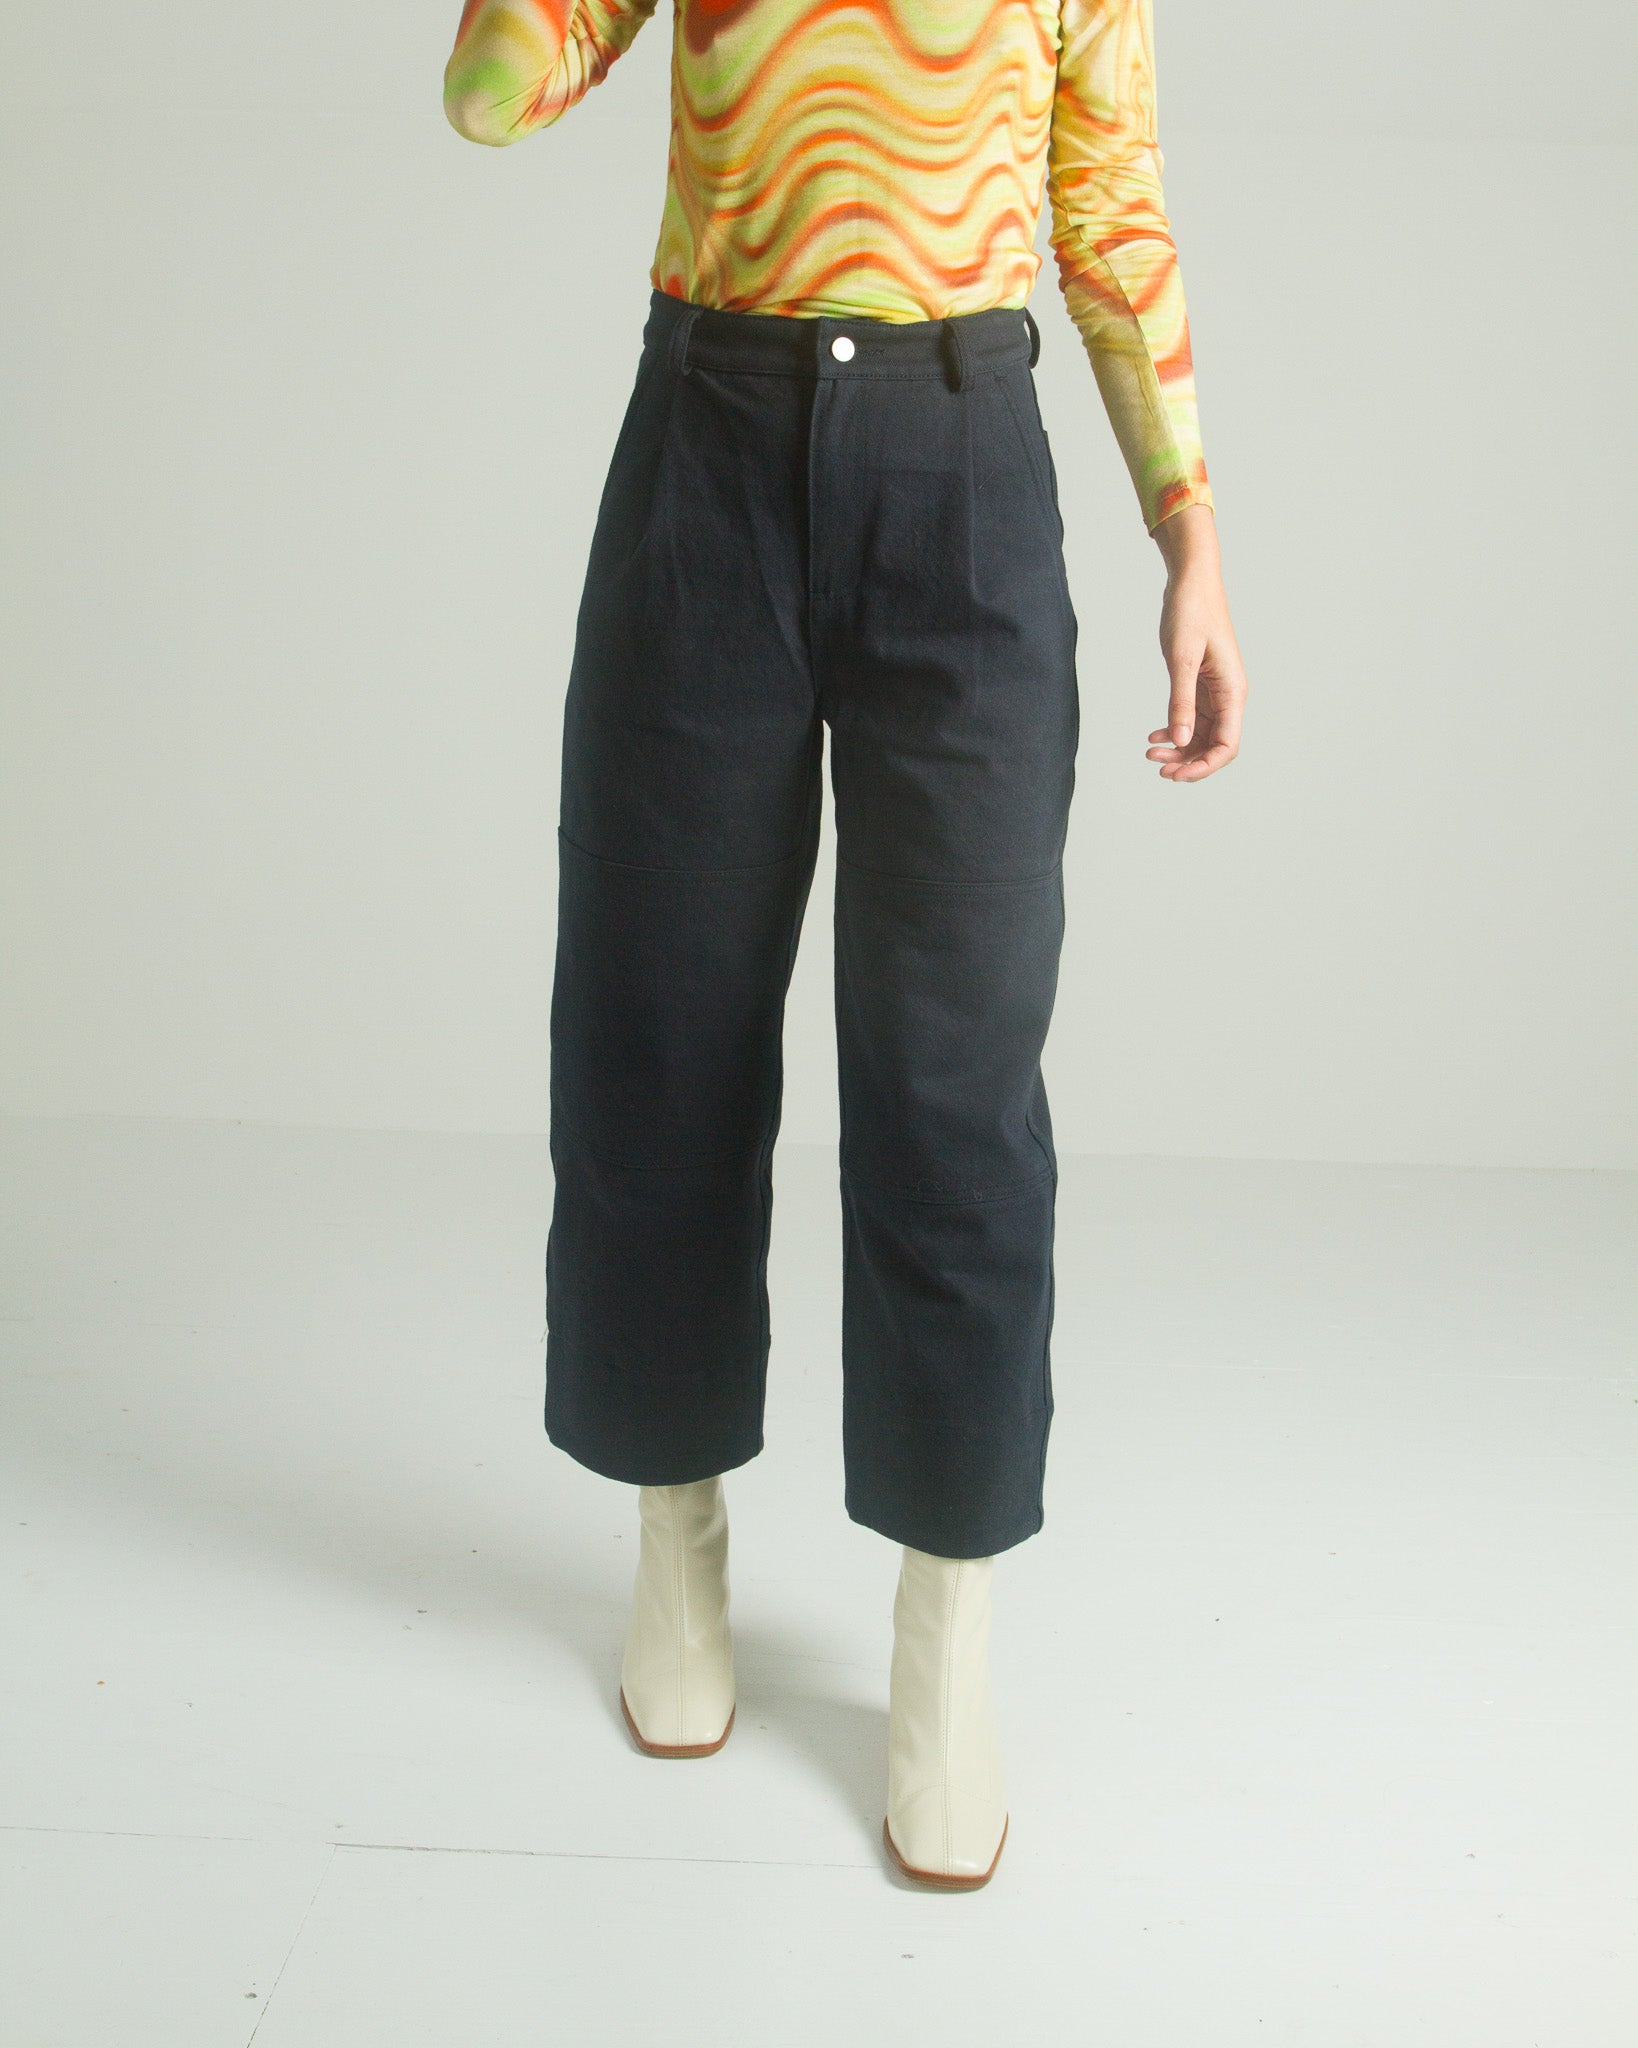 Kordal Quincy Work Pants in Indigo